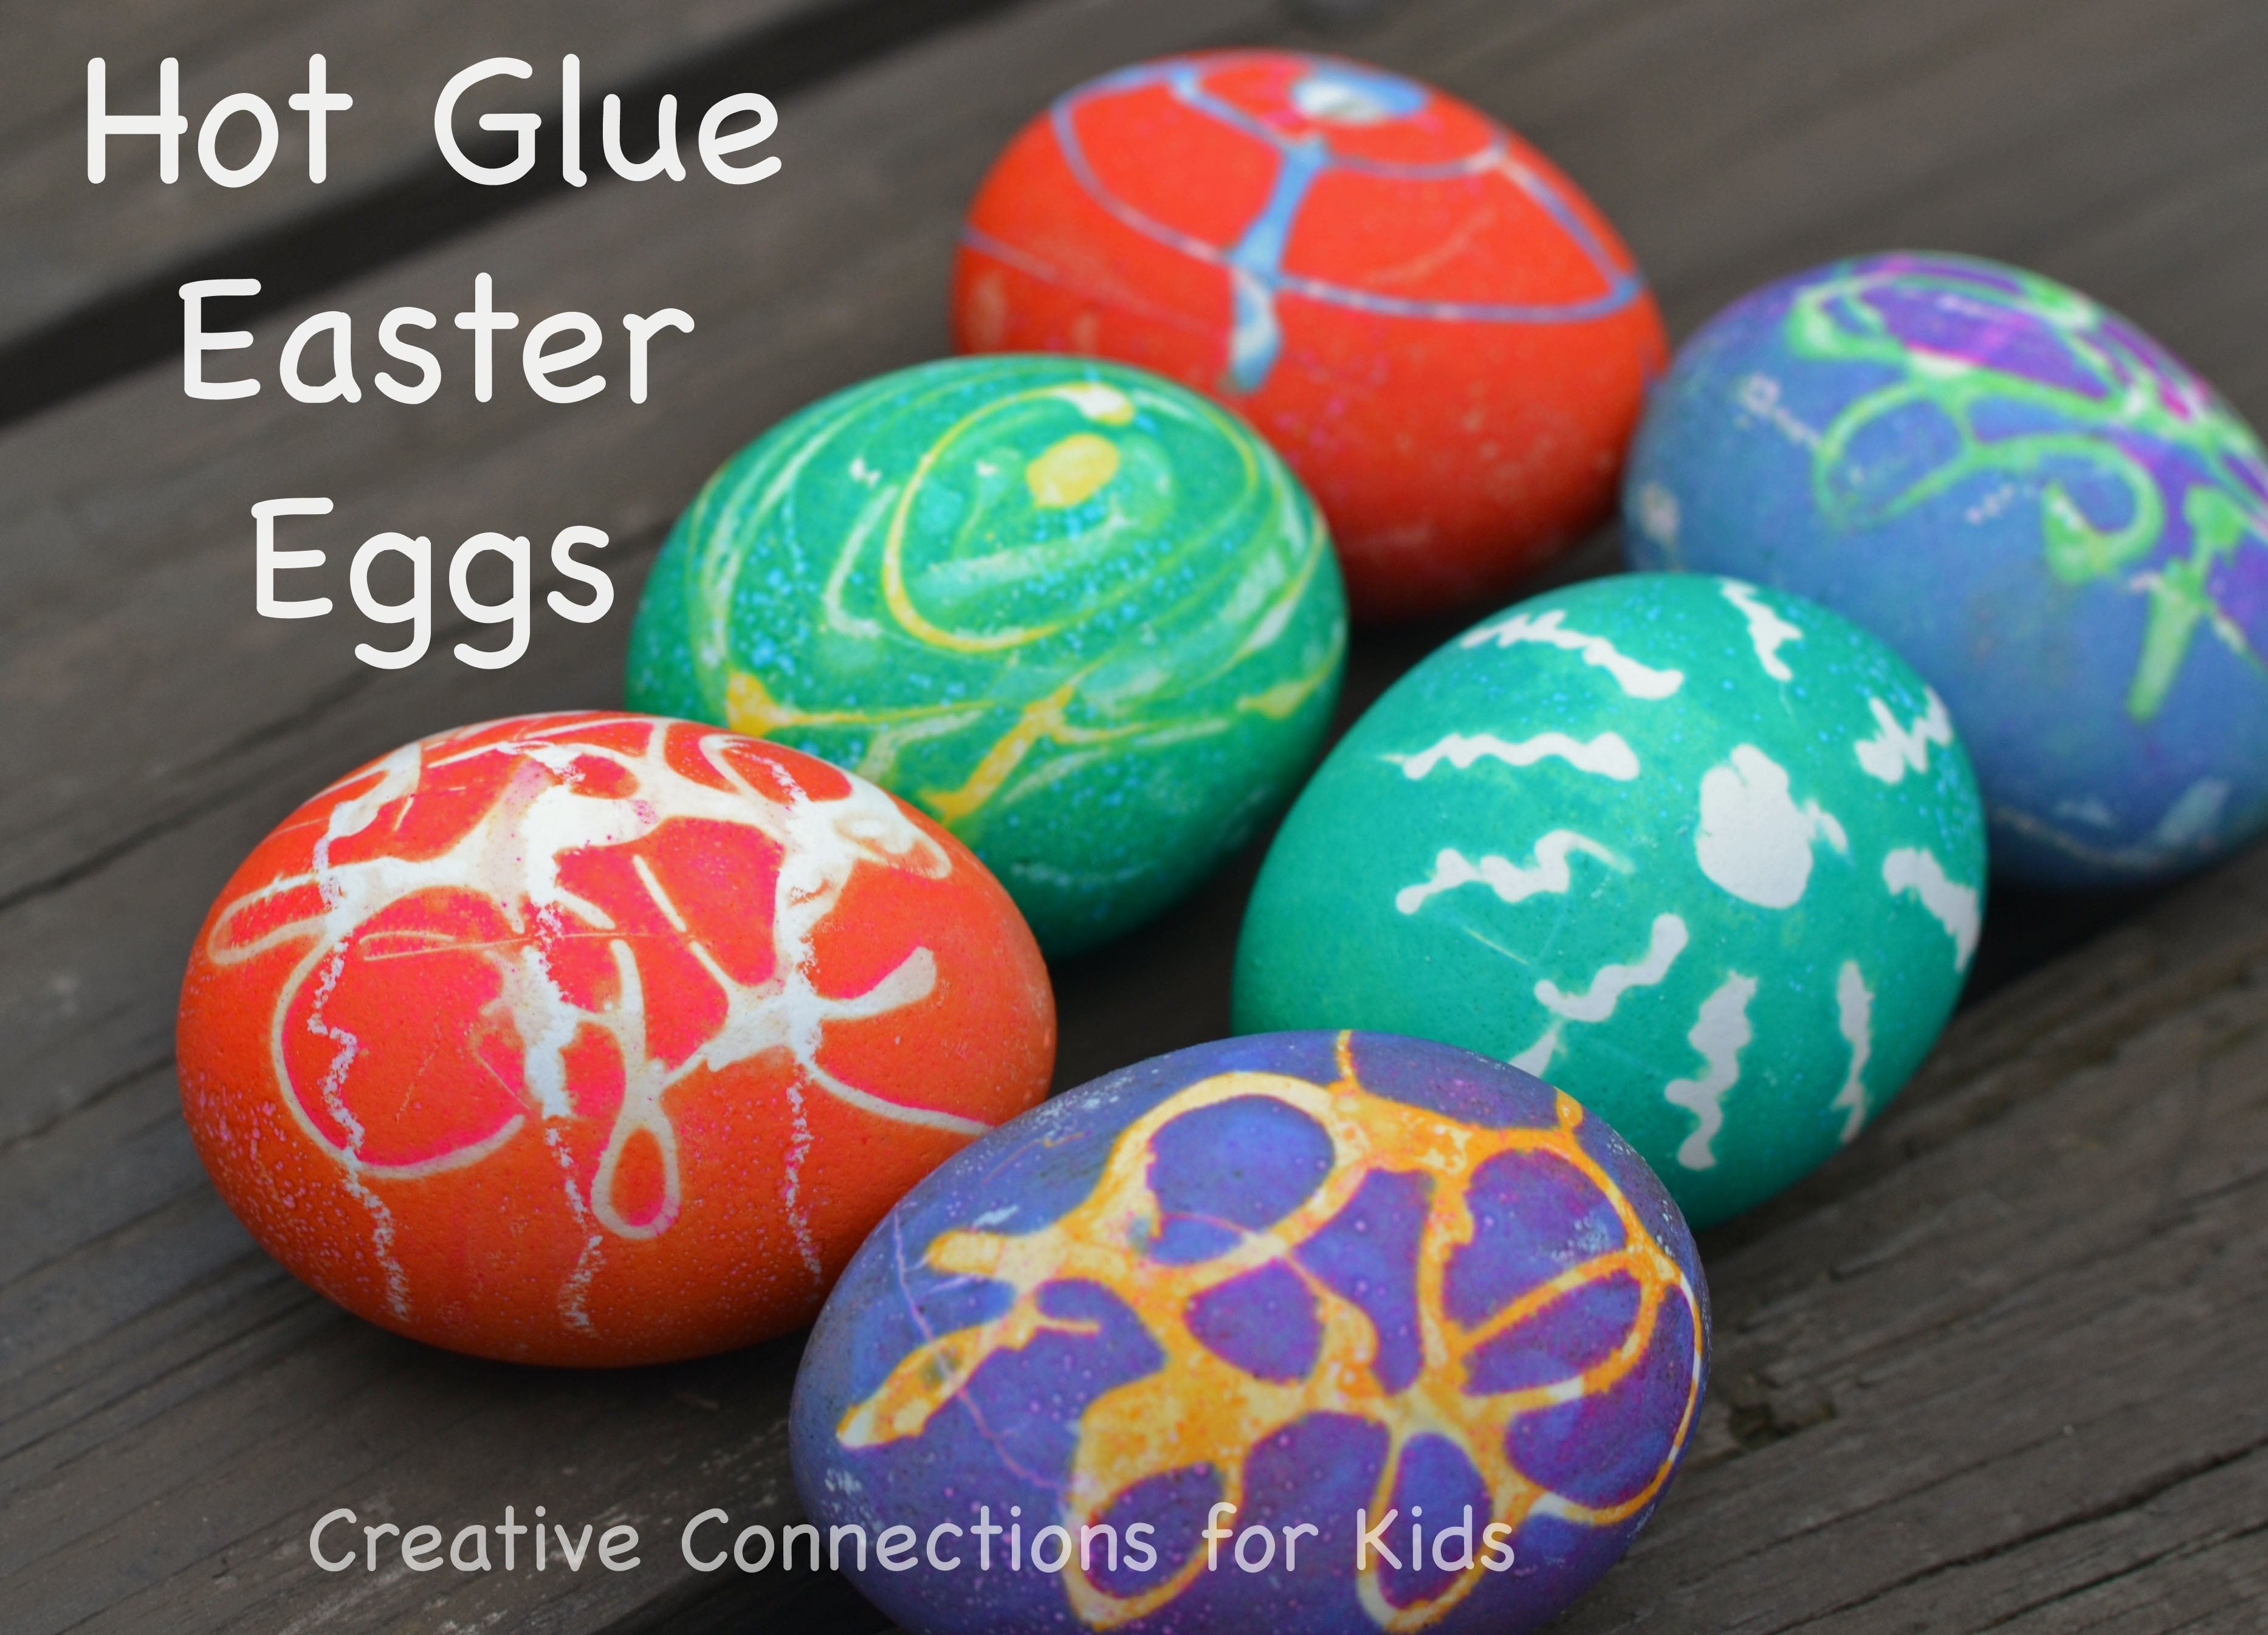 10 Cute Cool Easter Egg Decorating Ideas hot glue color beautiful easter eggs 2020